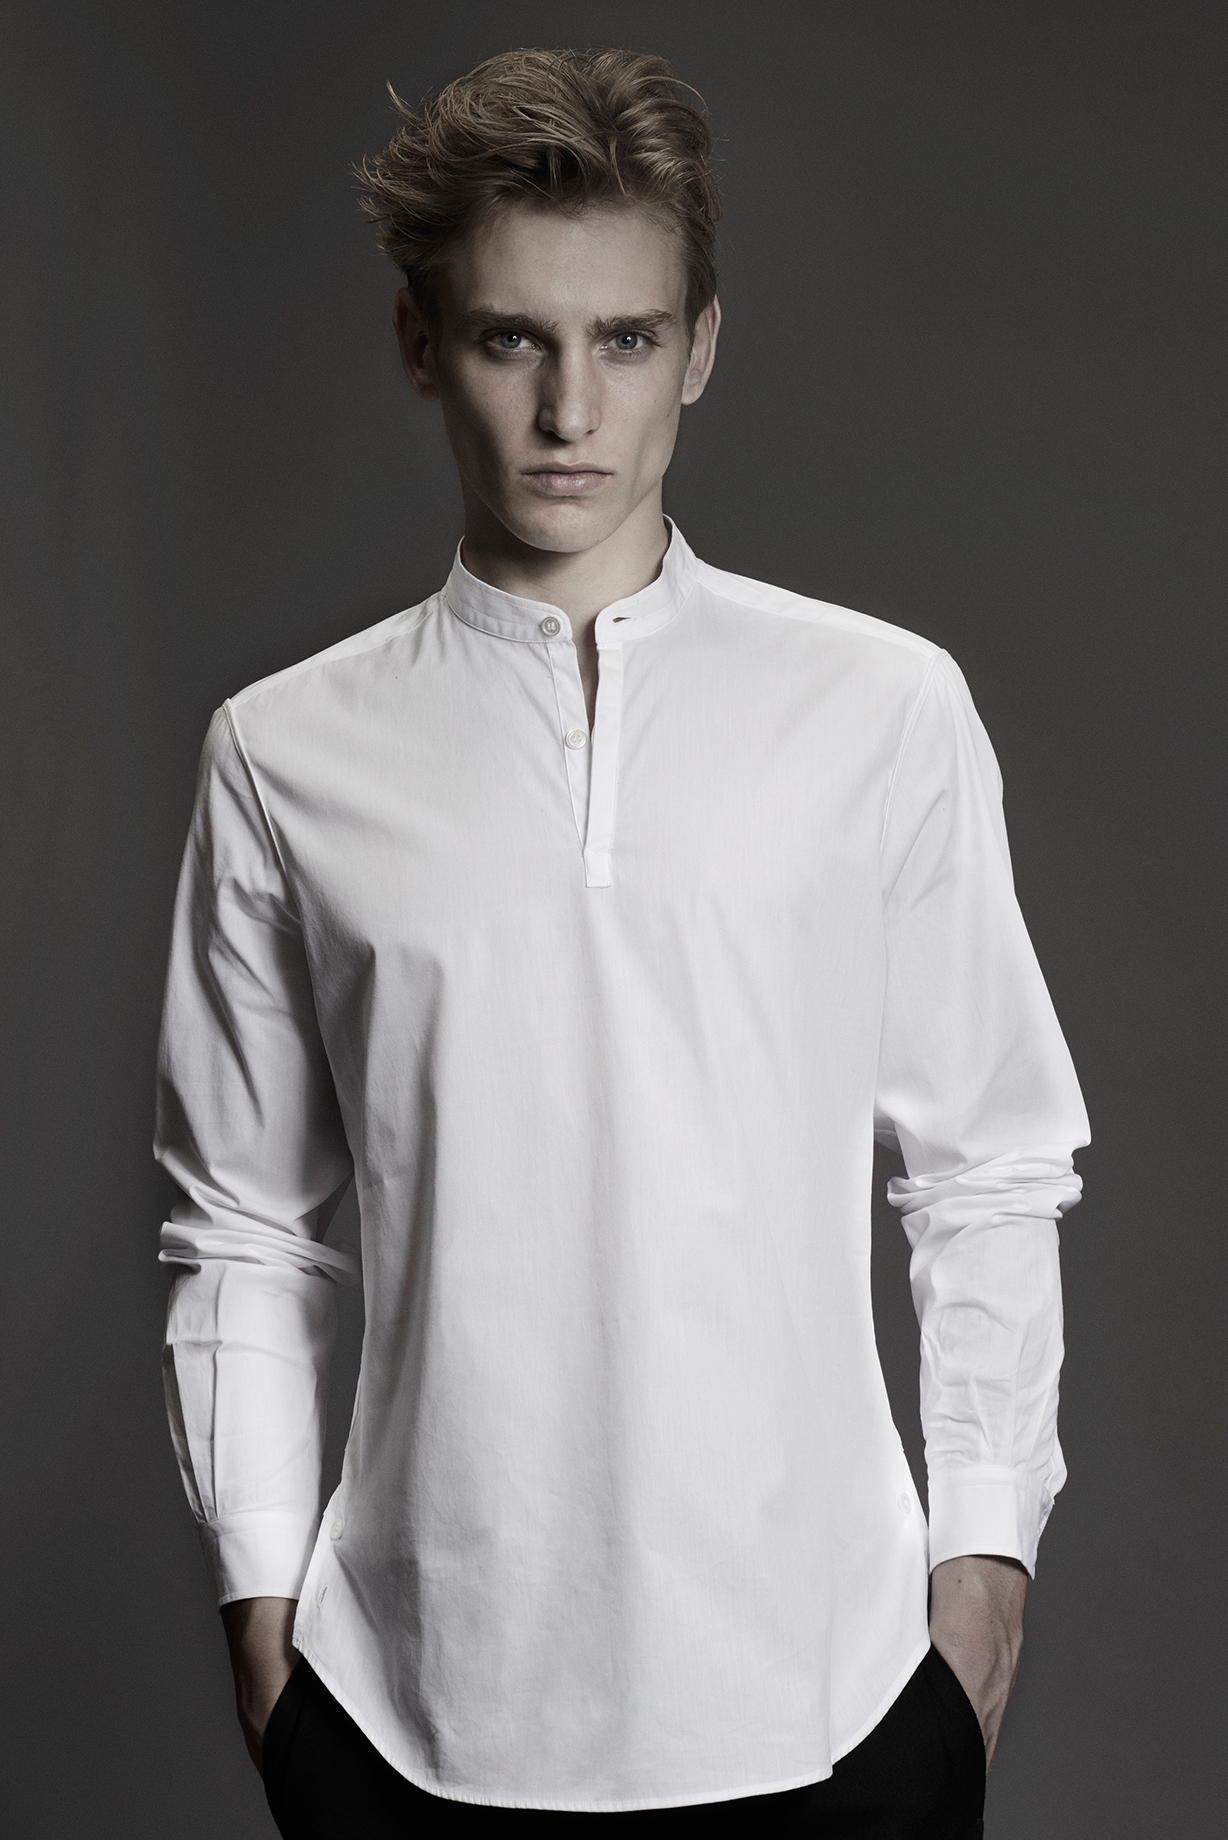 CONTEMPORARY SHIRT Colours: White 100% Cotton Made In Italy